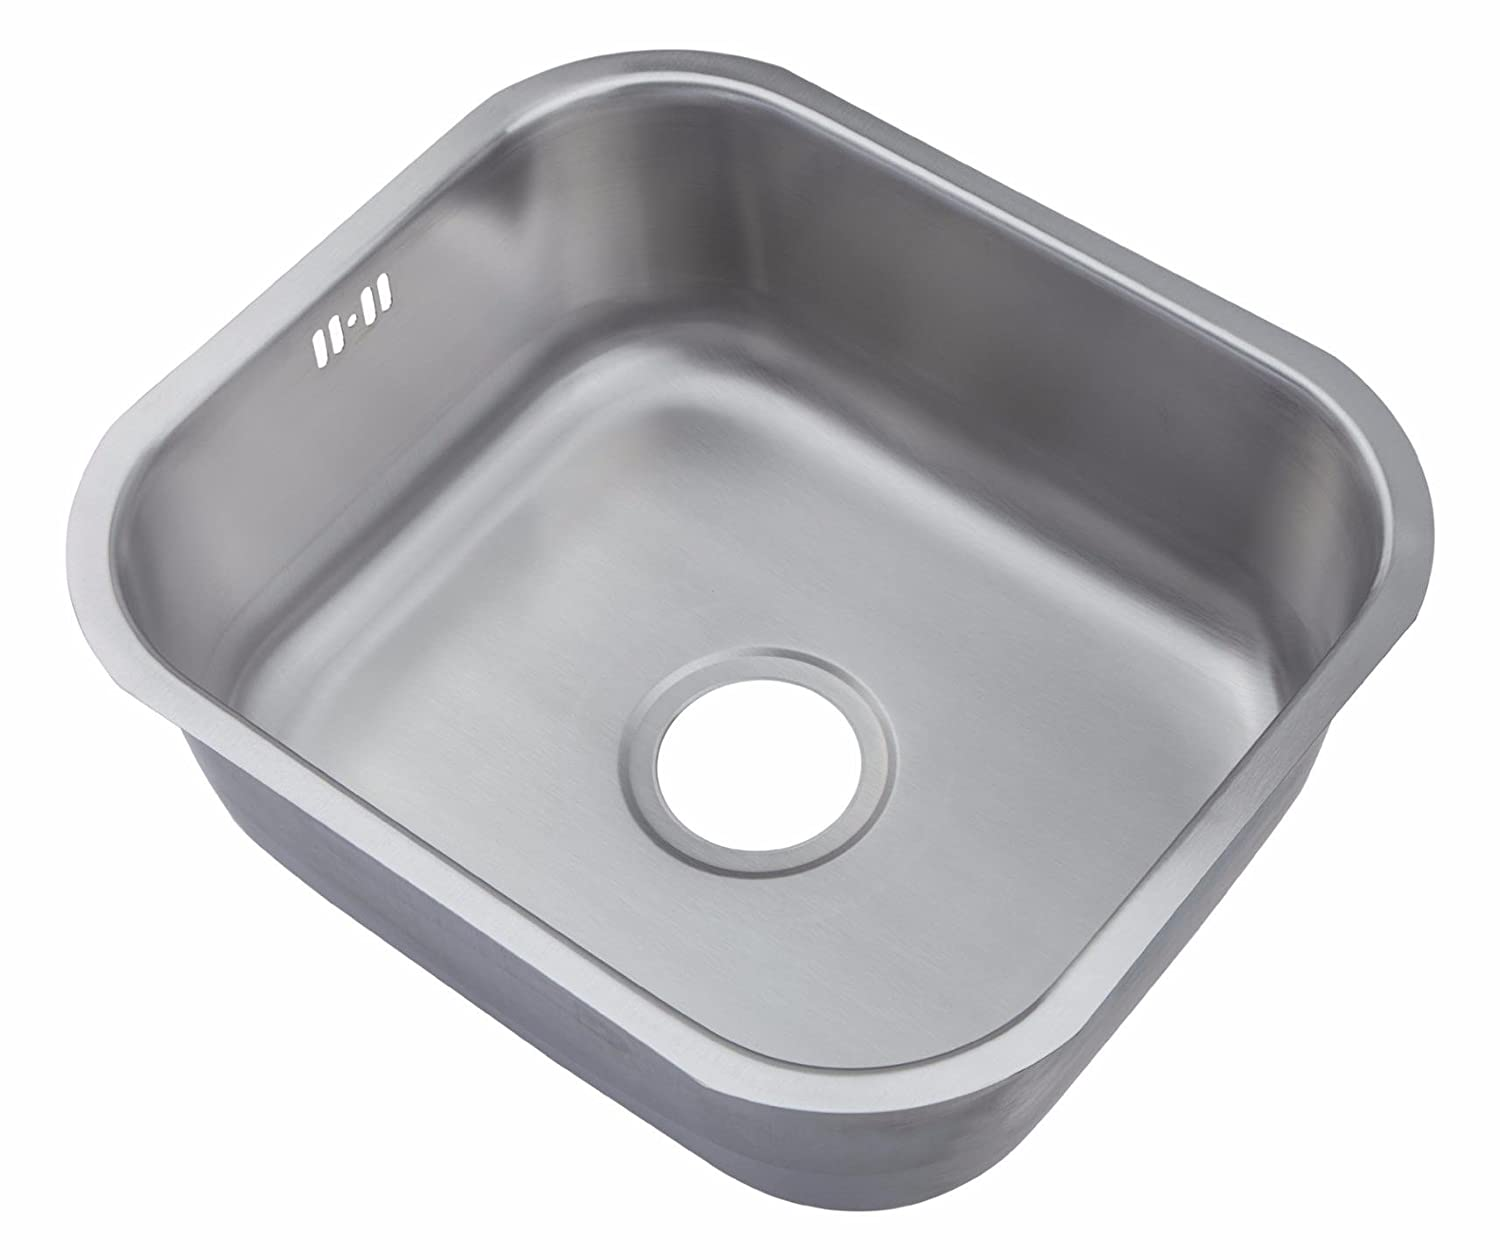 Kitchen Sinks Brushed Steel Undermount Bowl 465 x 410 (A15 bs) Grand Taps